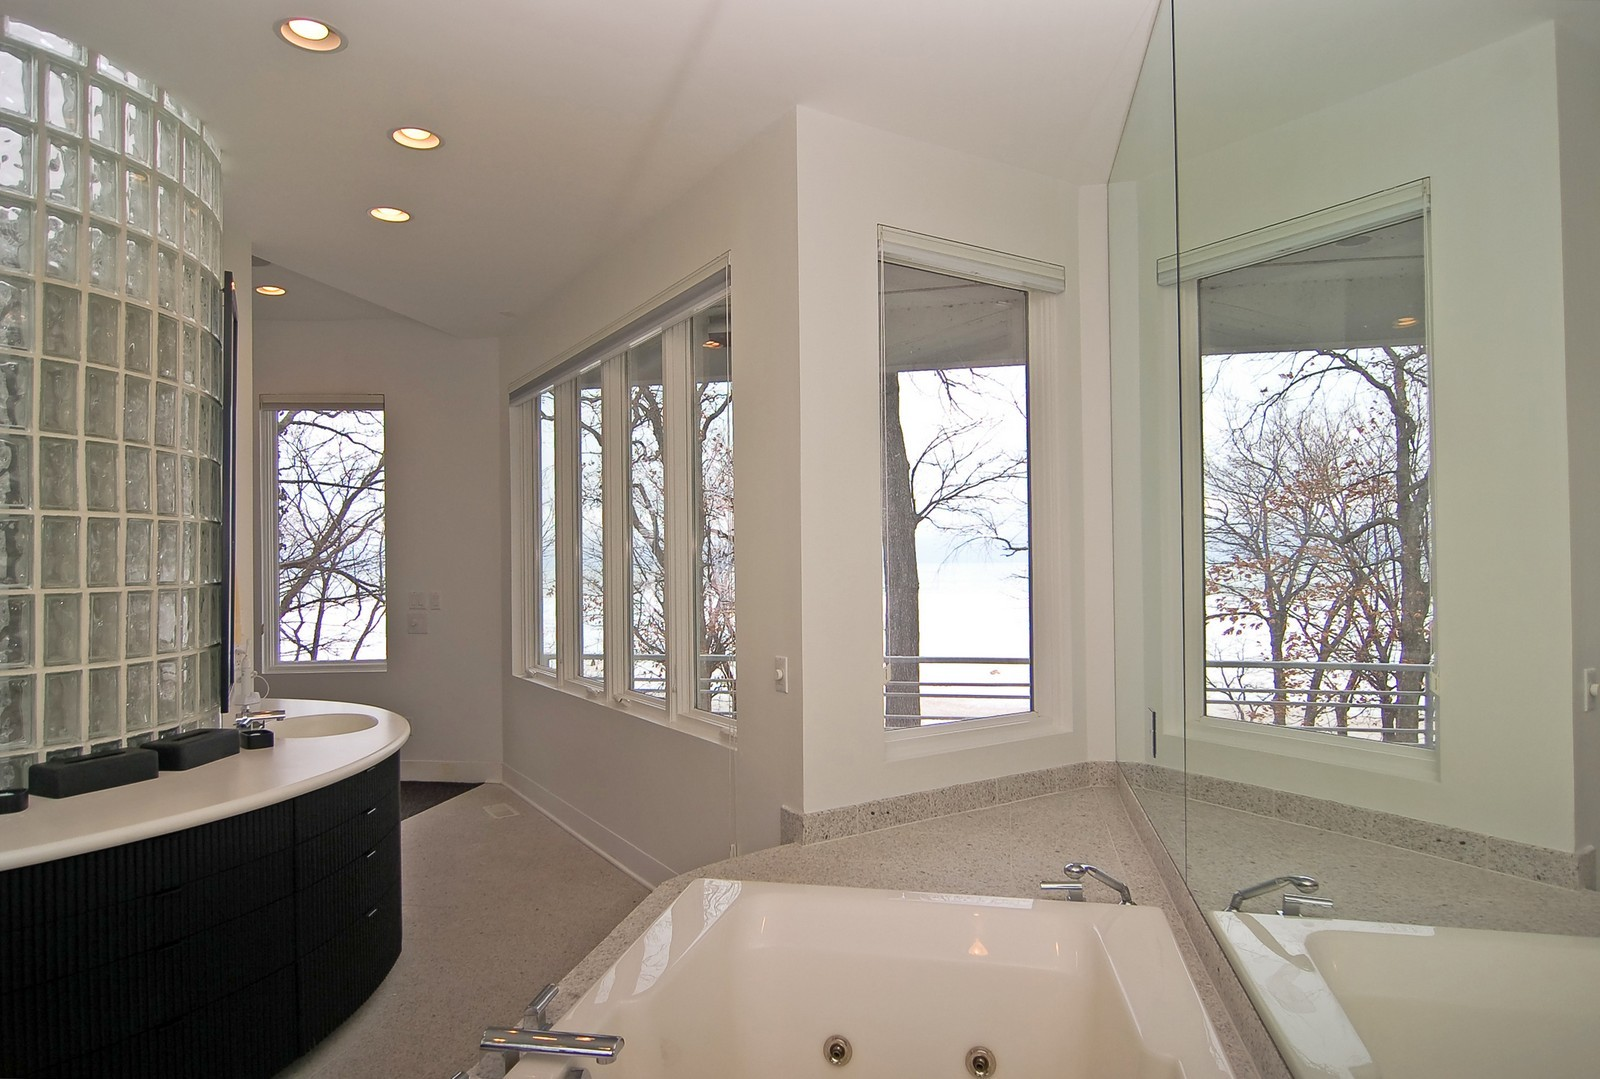 Real Estate Photography - 15930 Lake Ave, Union Pier, MI, 49129 - Master Bathroom